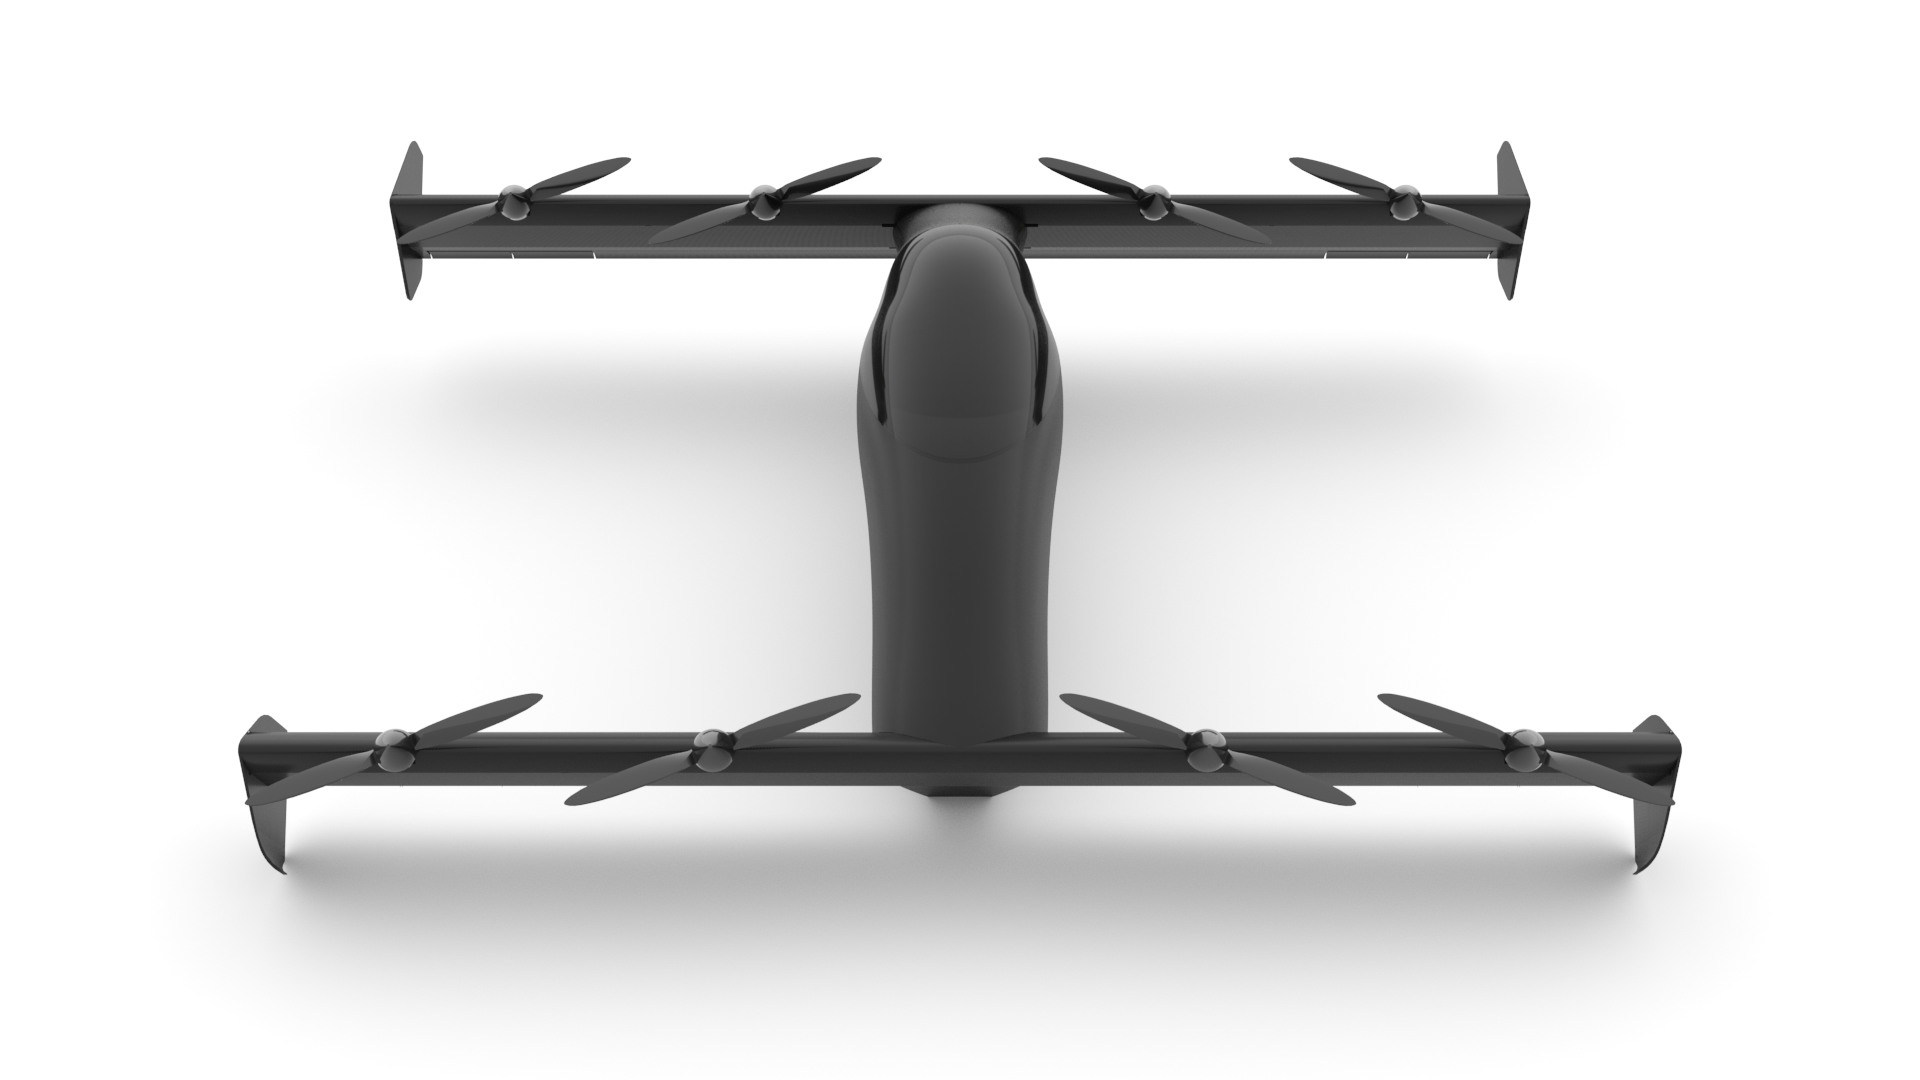 Opener's Blackfly Vtol Aircraft Is Set to Turn Us All into